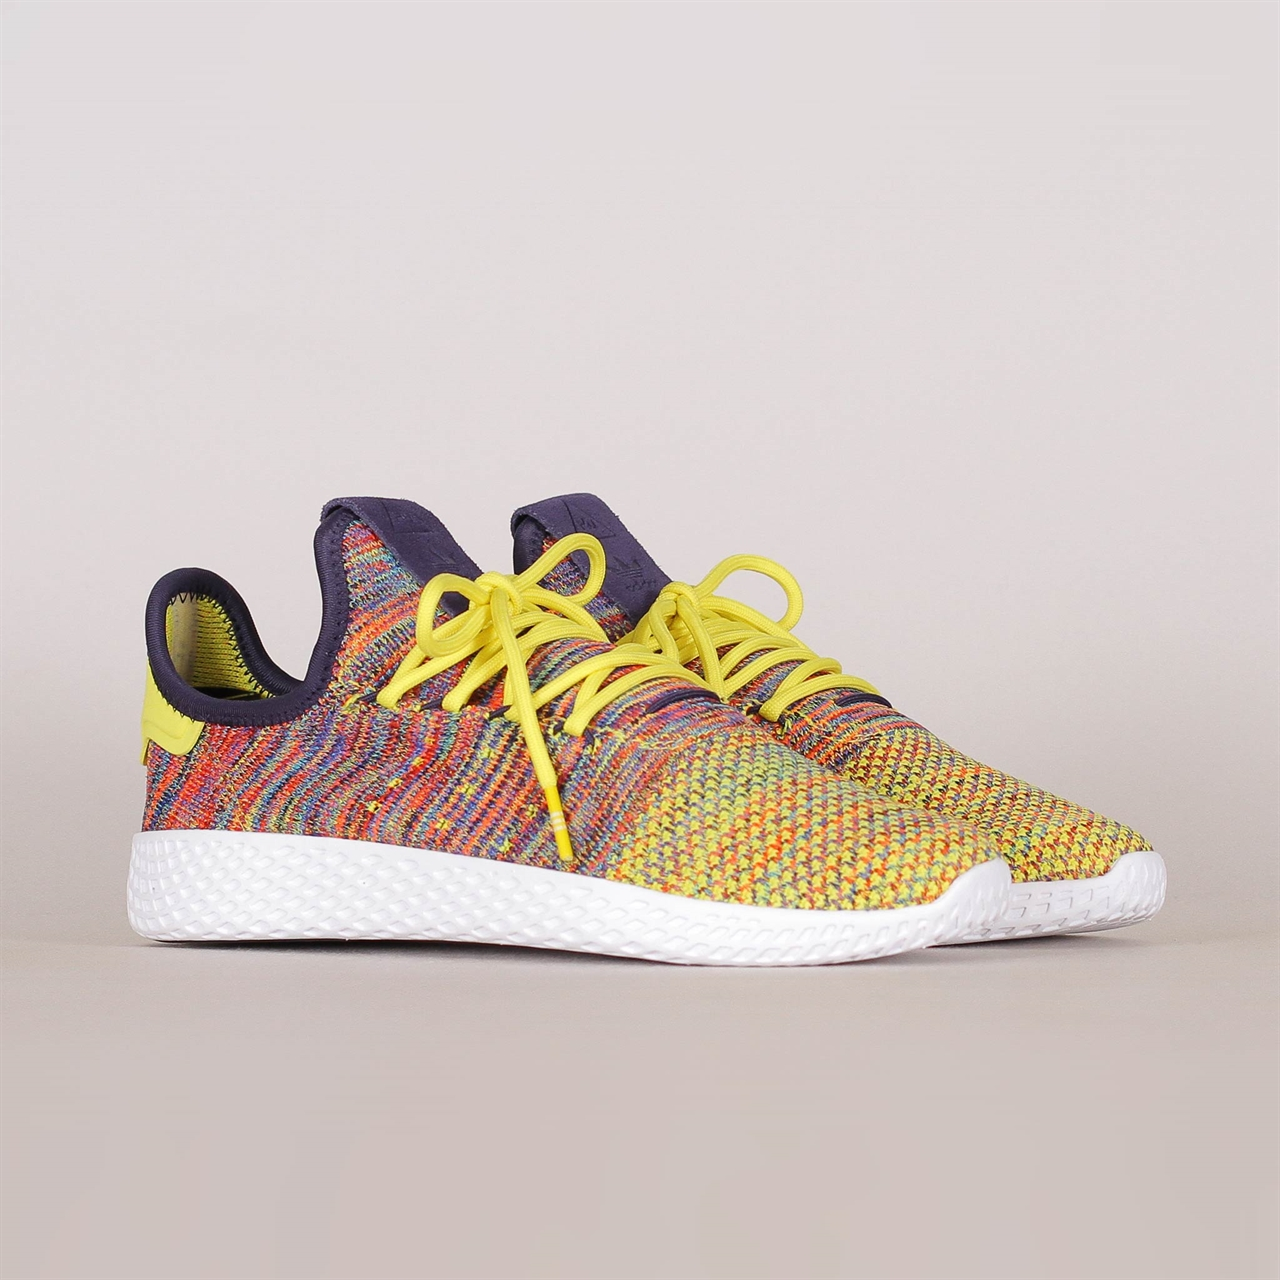 e64cd27f17b8d Shelta - Adidas Originals Pharrell Williams Tennis HU (BY2673)